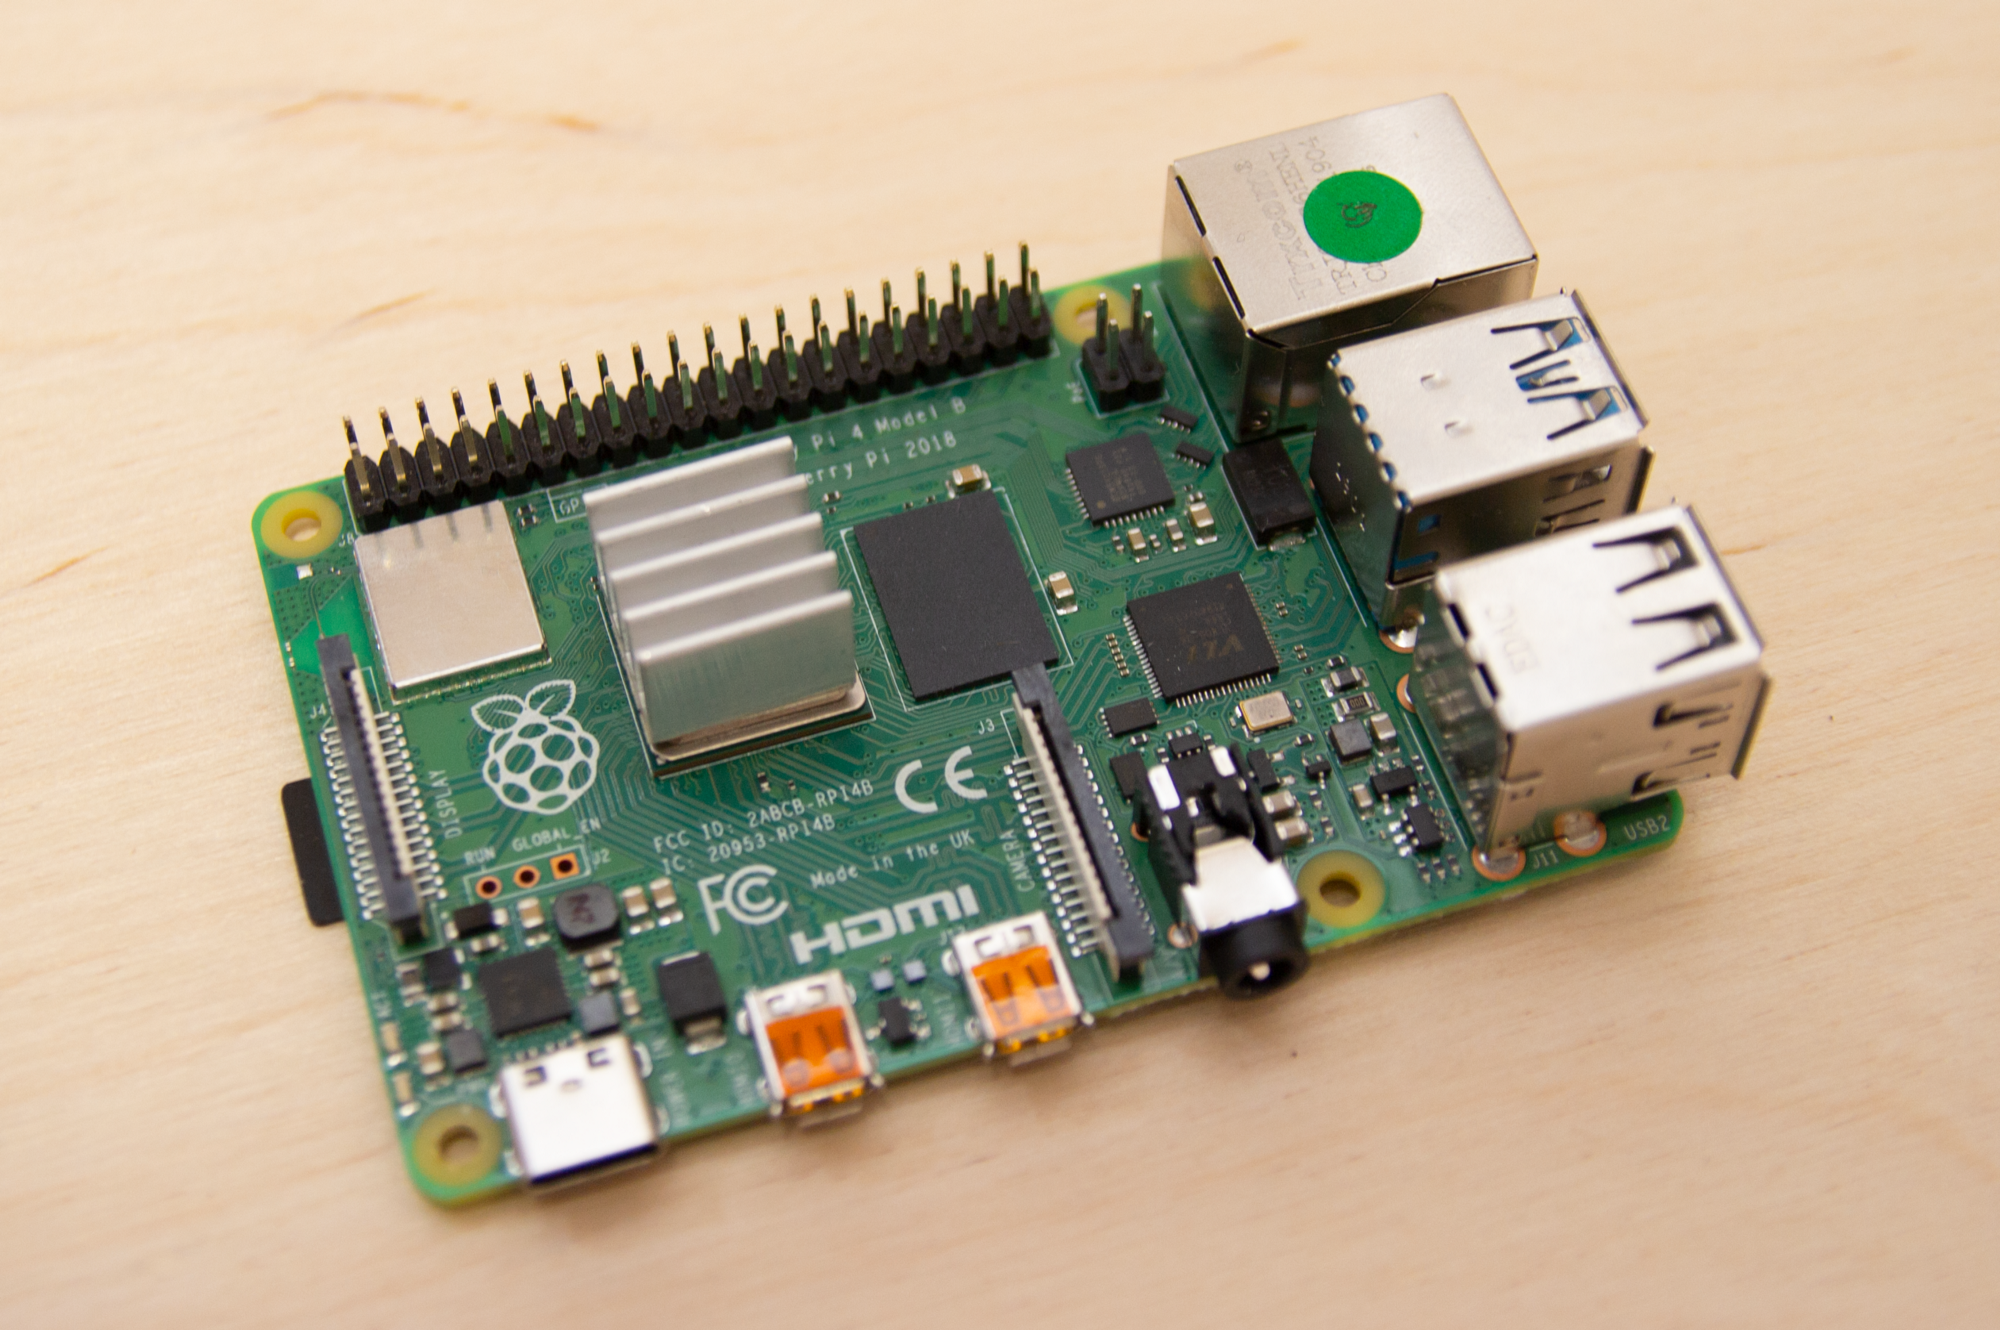 Raspberry Pi 4 v 3B+: first hands-on review! - Learning by Making